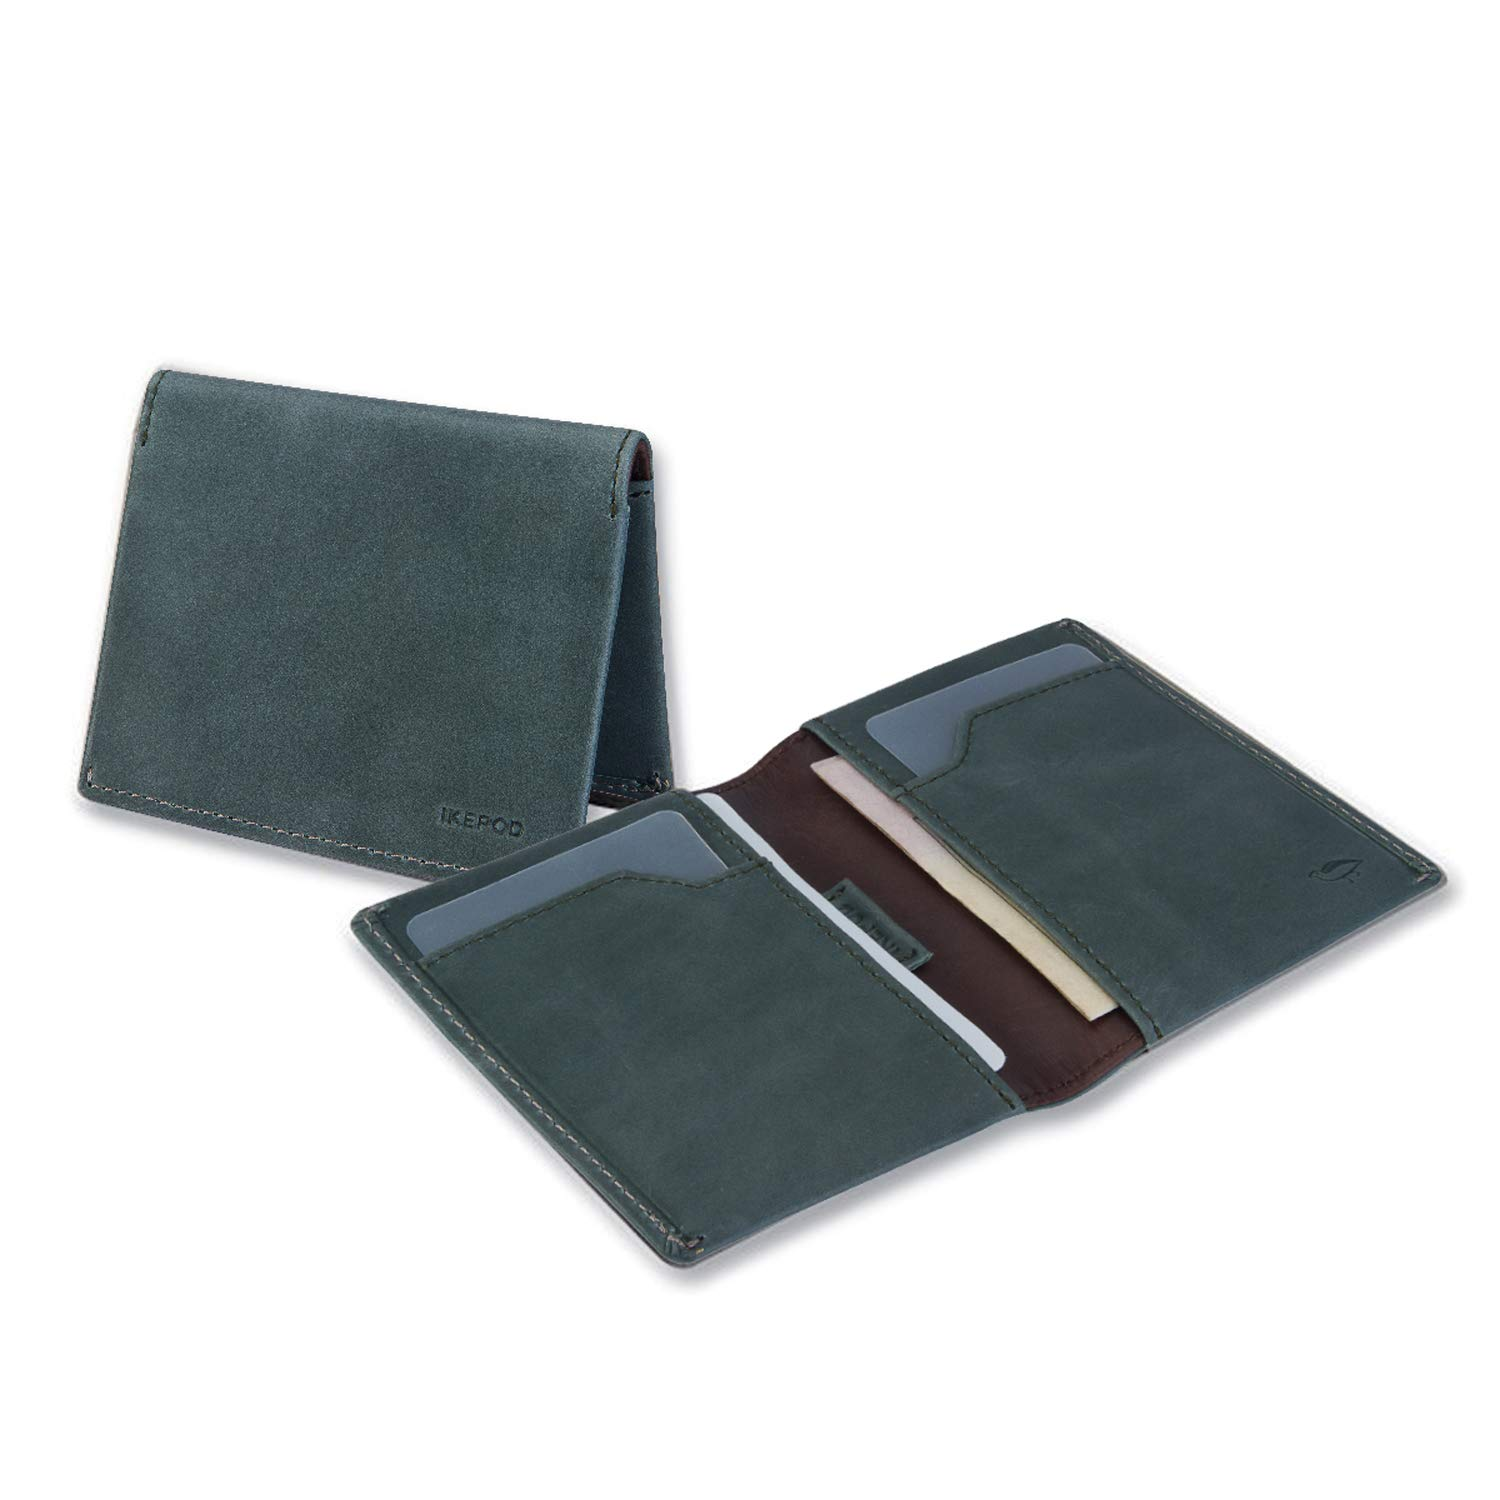 Mens Wallets,Ikepod Italy Leather Slim Sleeve Wallet (6 Colours) [RFID Blocking and Slim Stitching!] (EUCALYPTUS)